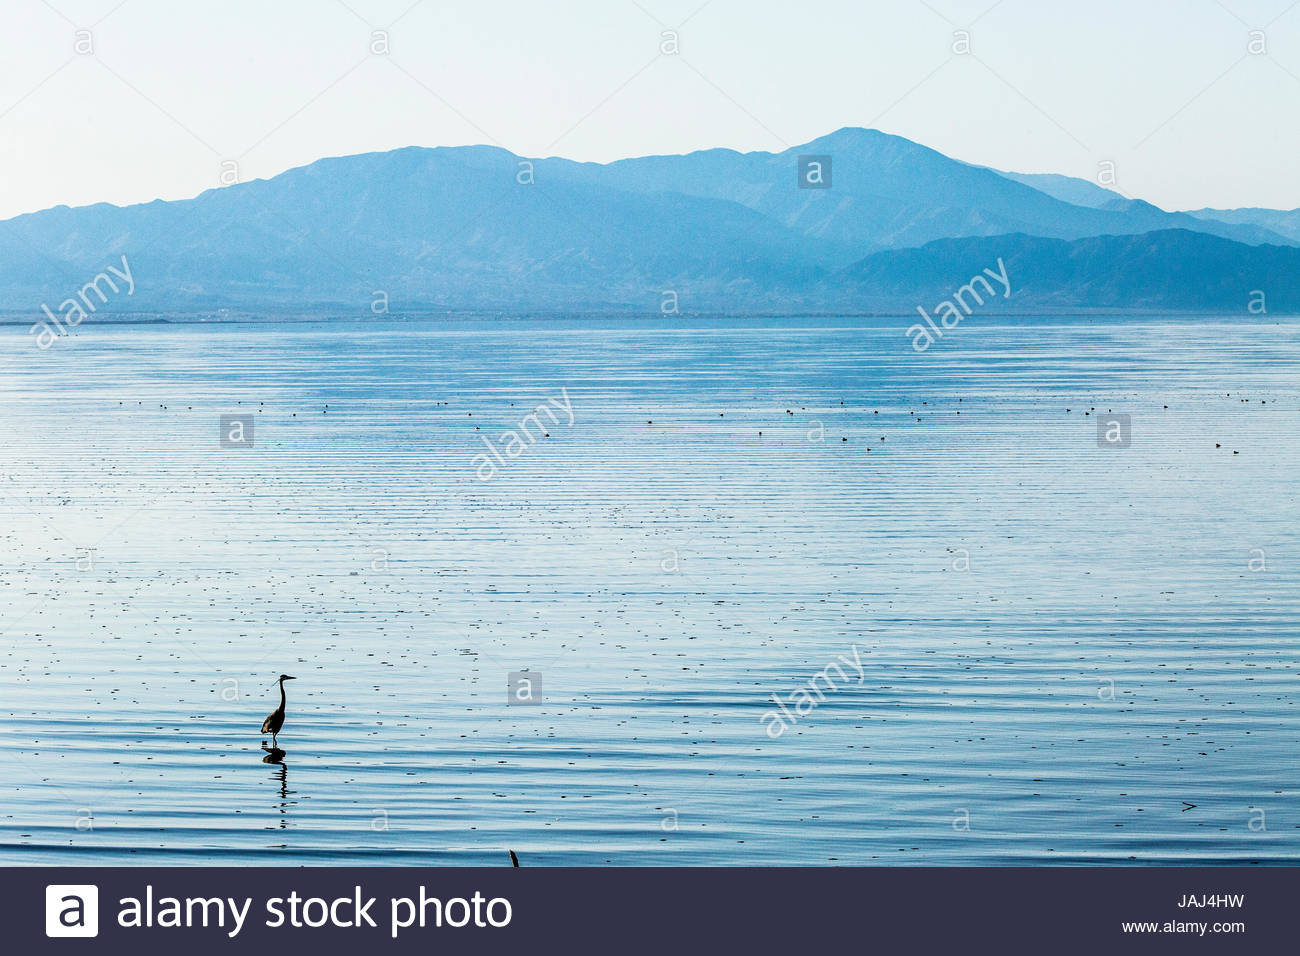 A Great Blue Heron, Ardea herodias, in the shallows in the Salton Sea in Southern California. Stock Photo